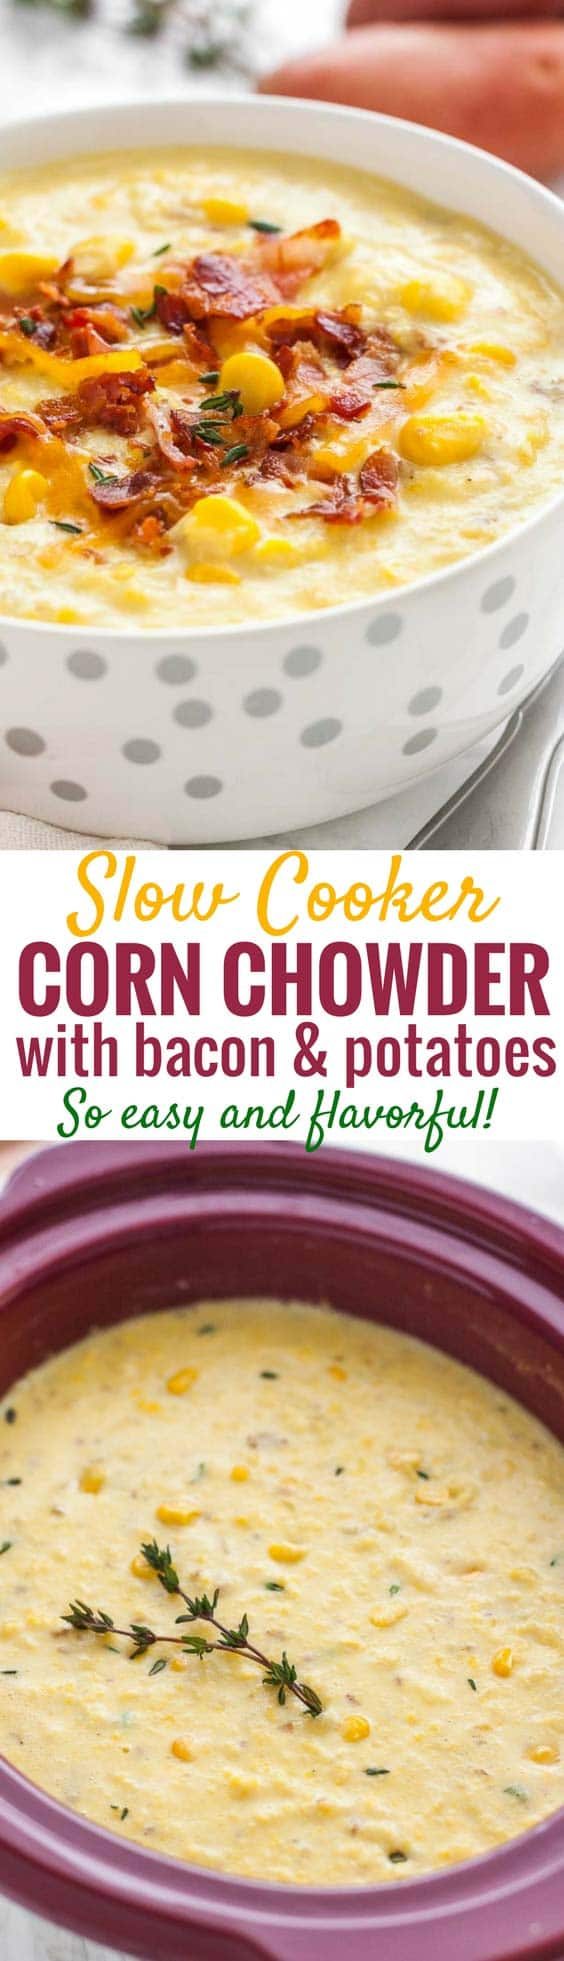 Slow Cooker Corn Chowder is so easy to make and takes just a few minutes of prep! A creamy and flavorful potato corn chowder made in the Crockpot that's full of crispy bacon bits, sweet corn, and buttery red potatoes. It's the perfect soup for cold wintery weather that your whole family will love!  #slowcooker #crockpot #bacon #cornchowder #potatoes #soupseason